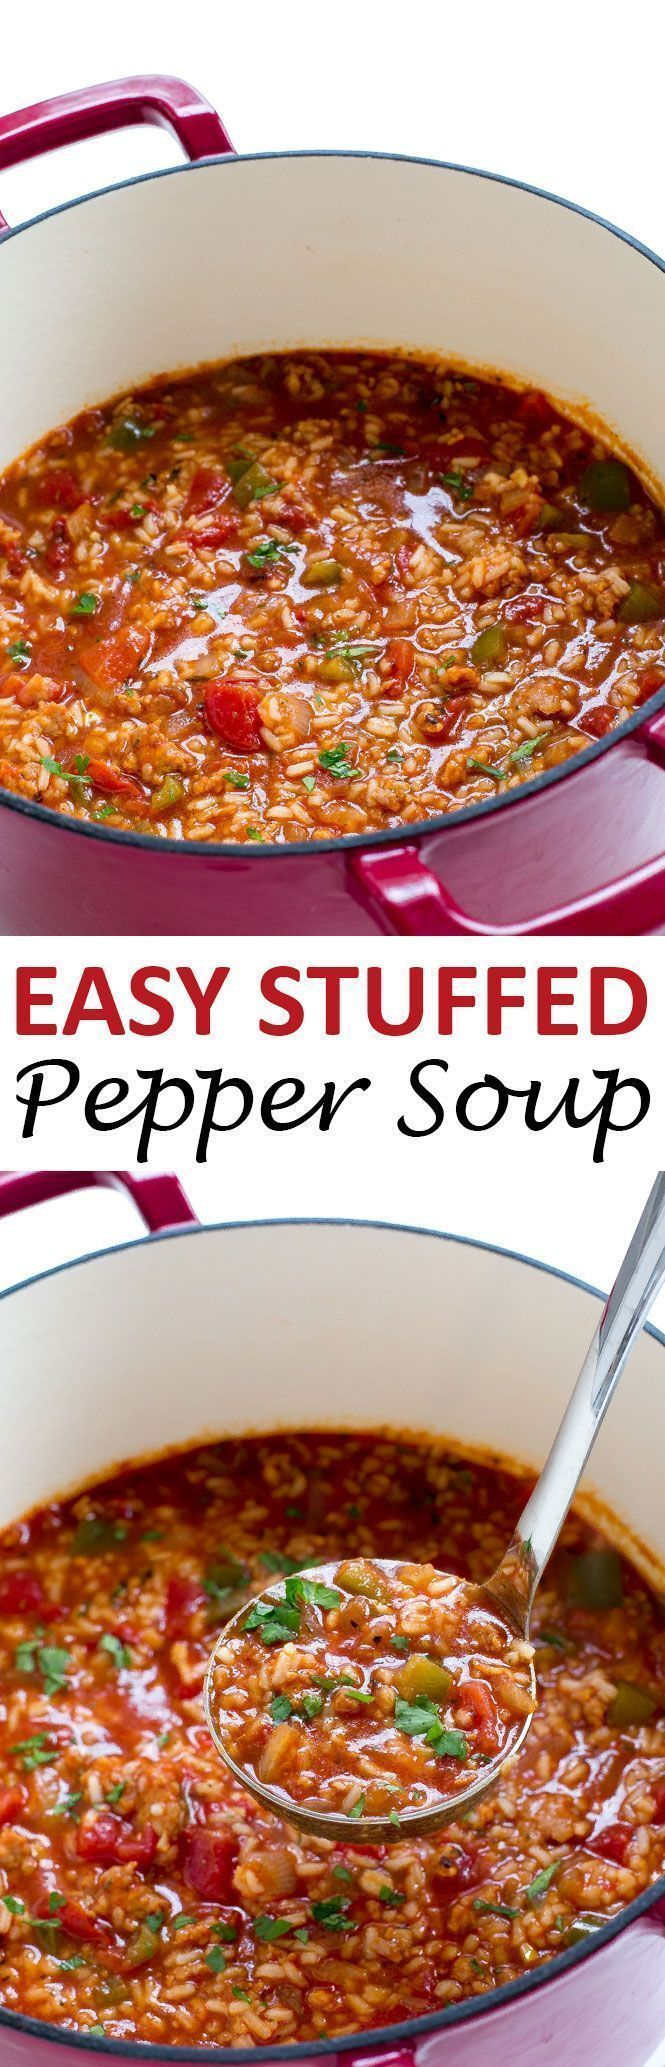 Stuffed Pepper Soup loaded with spicy sausage, bell peppers and rice! Everything you love about a stuffed pepper but in soup form!   chefsavvy.com #recipe #stuffed #pepper #soup #rice #sausage #dinner #meat